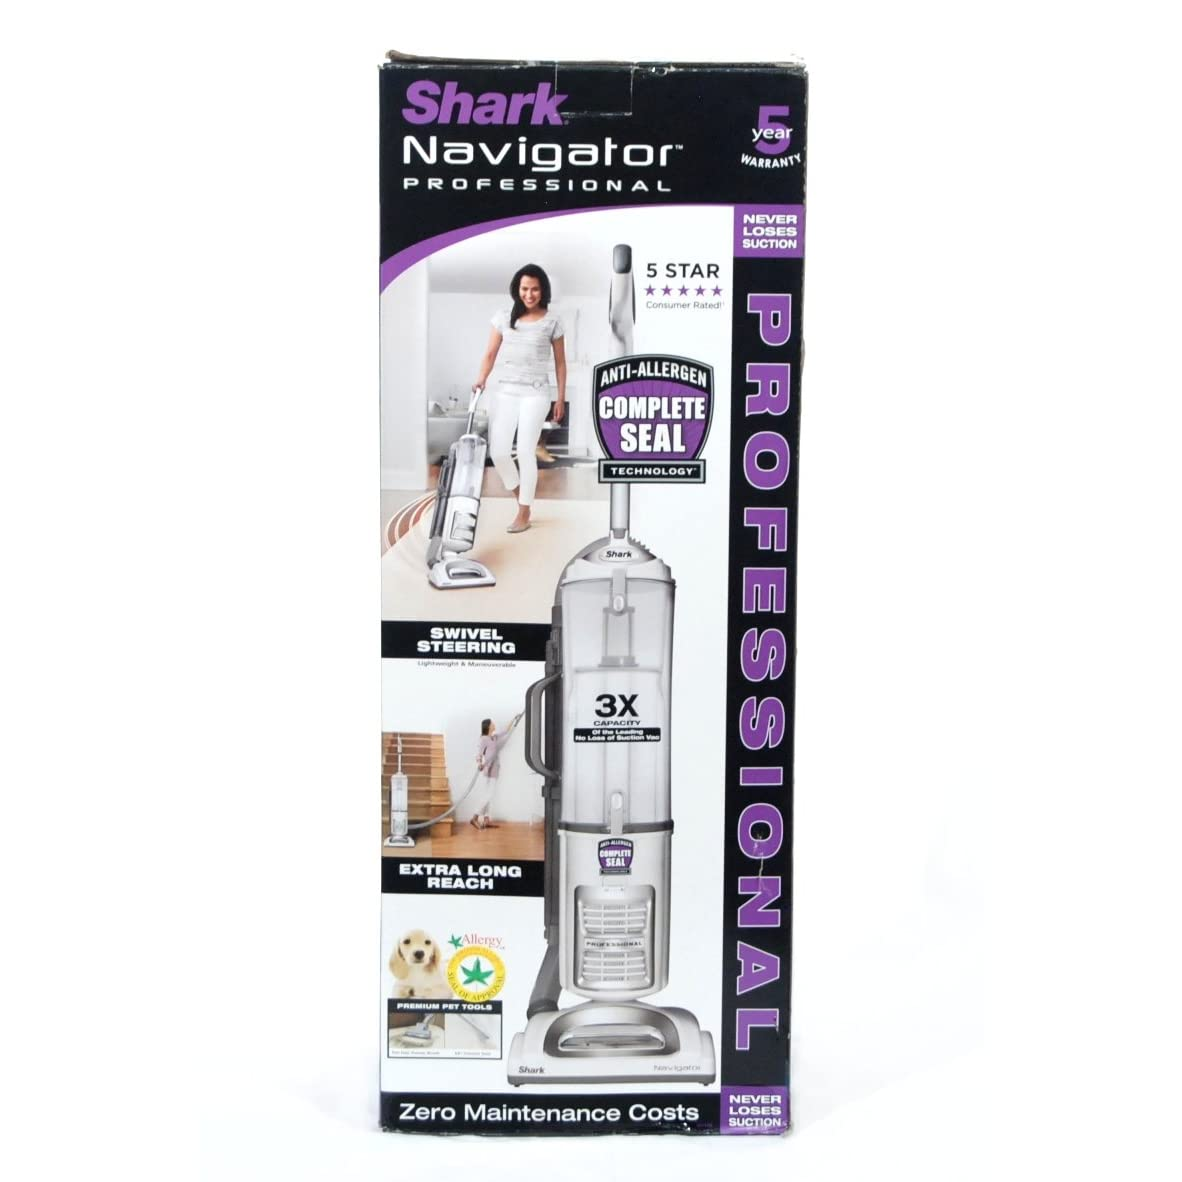 are you looking for vacuum cleaner the shark navigator upright white canister vacuum cleaner uv420 series is a great choice